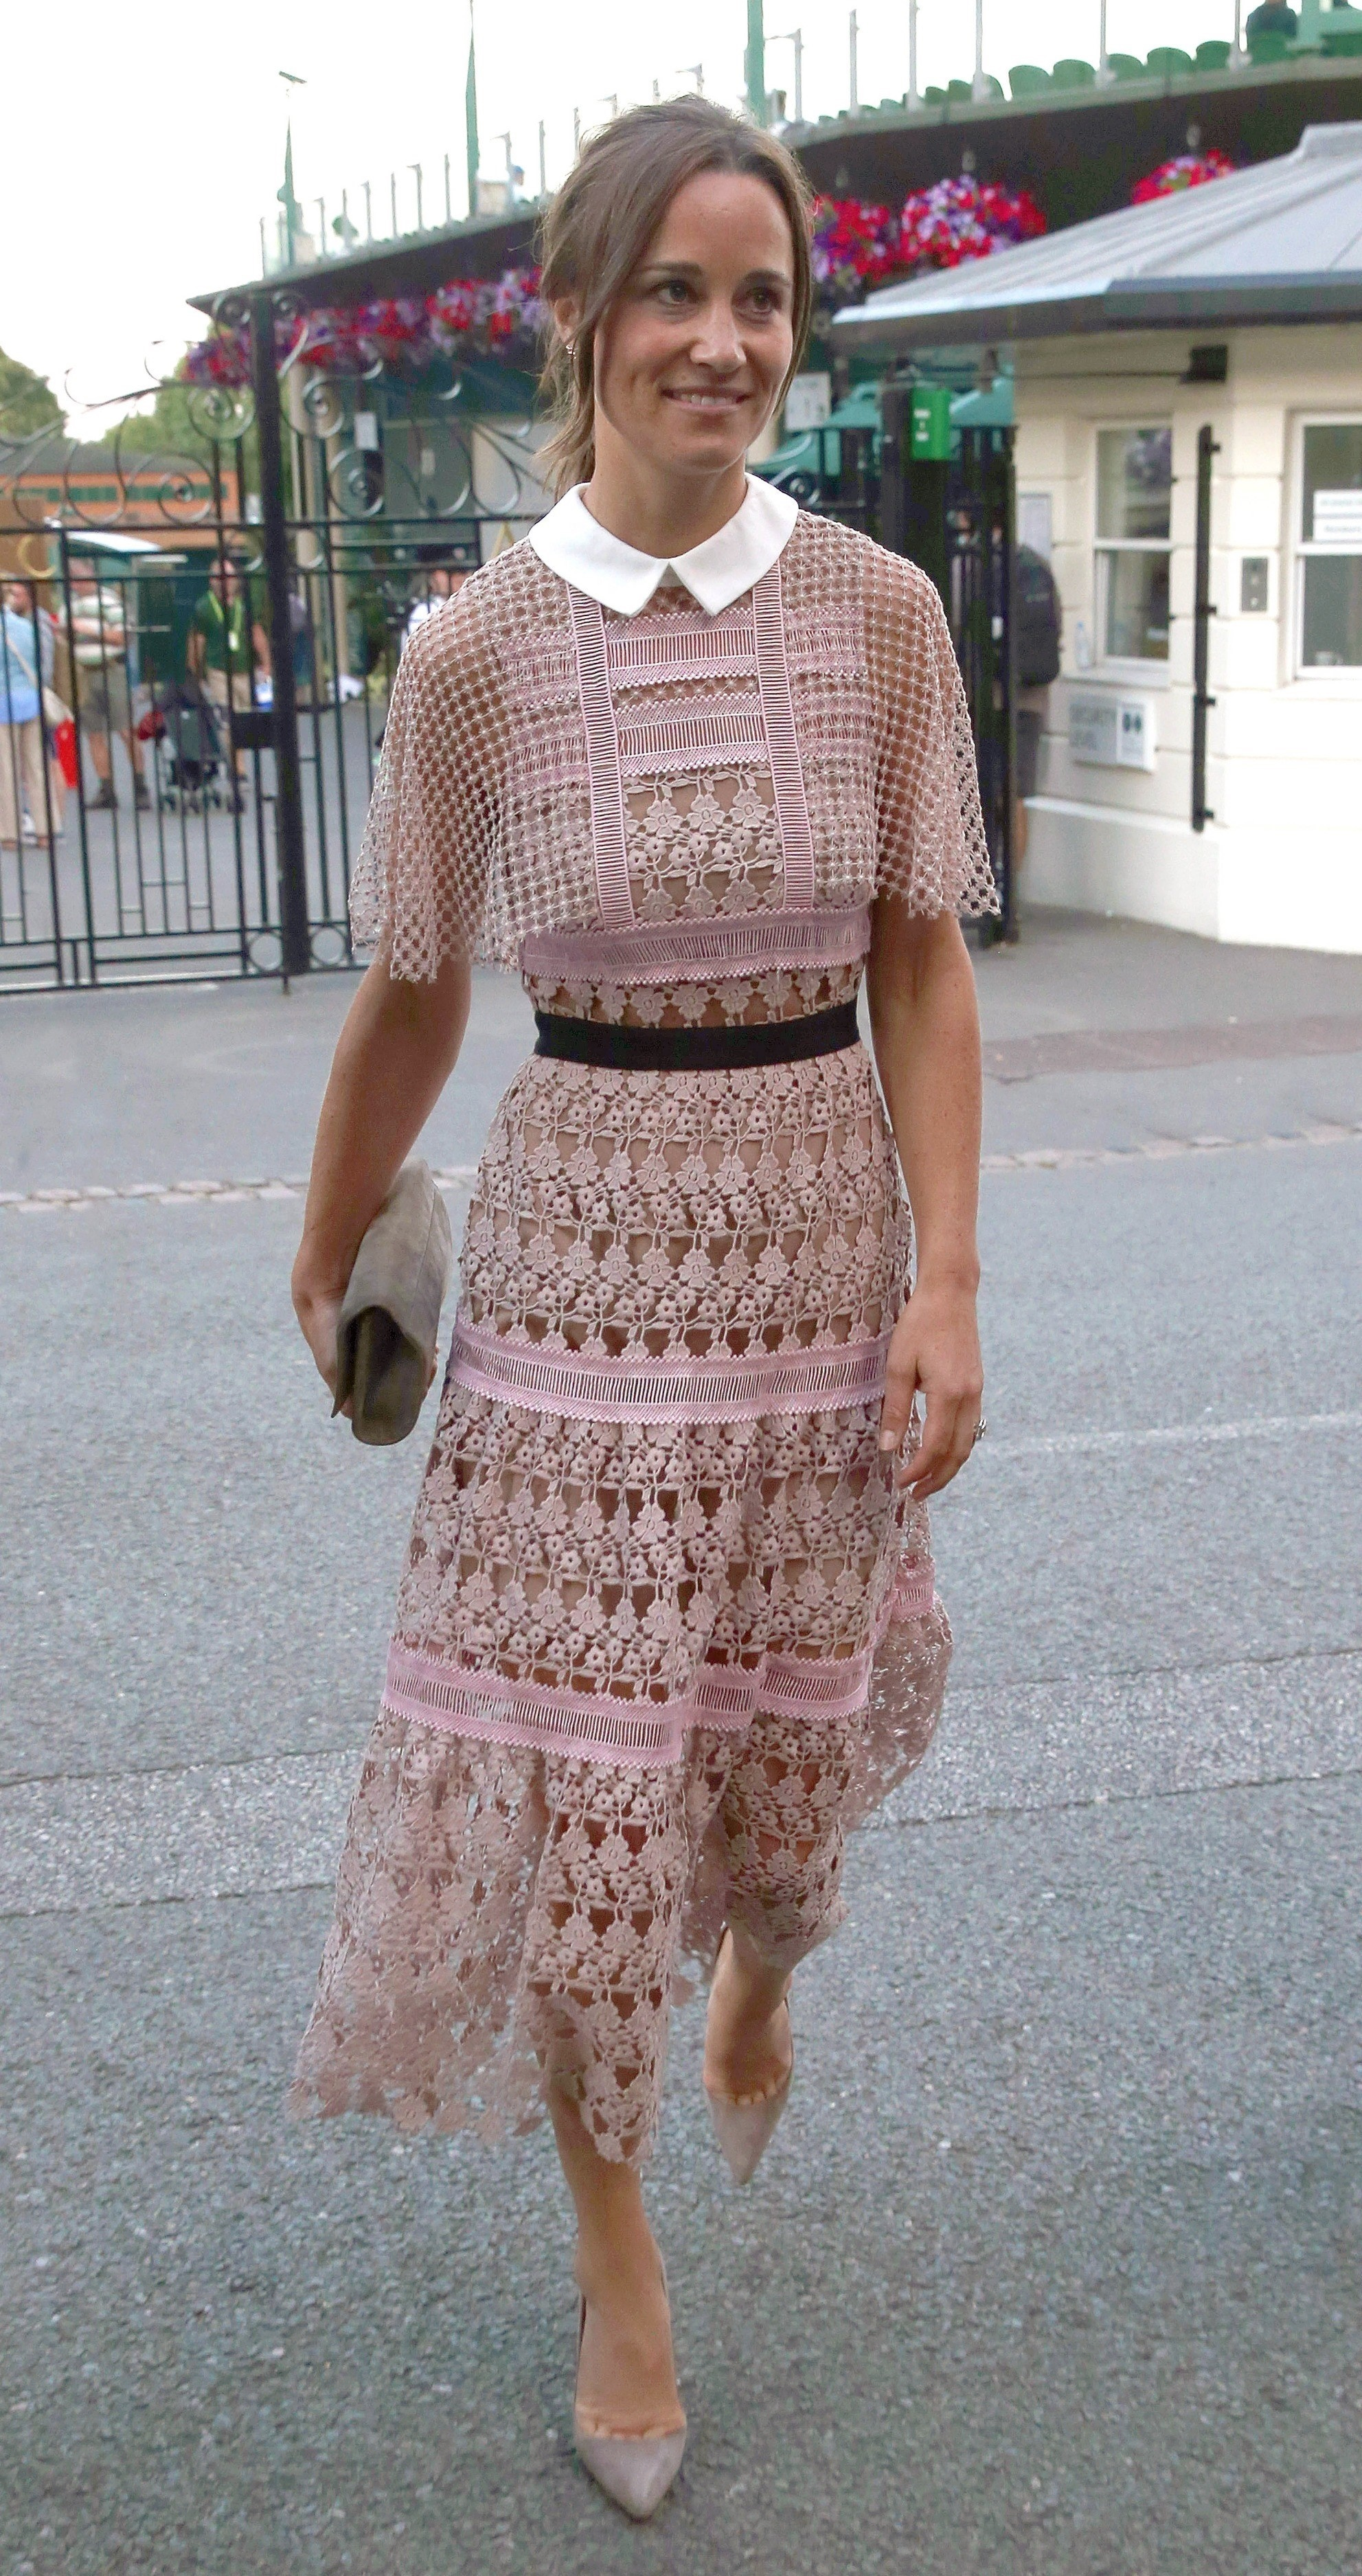 London, UNITED KINGDOM  - Pippa Middleton & James Middleton are both seen here leaving AELTC Wimbledon Tennis Club In London after attending The 2017 Wimbledon Championship on Day 3. Pippa looked stunning in a pale pink lace patterned dress whilst holding a clutch handbag James looked smart in a blue suit with a red tie. James was seen driving his sister Pippa home in a open top classic green land rover as they left The AELTC Wimbledon Championships 2017 on Day 3.  BACKGRID UK 5 JULY 2017, Image: 340986907, License: Rights-managed, Restrictions: , Model Release: no, Credit line: Profimedia, Xposurephotos